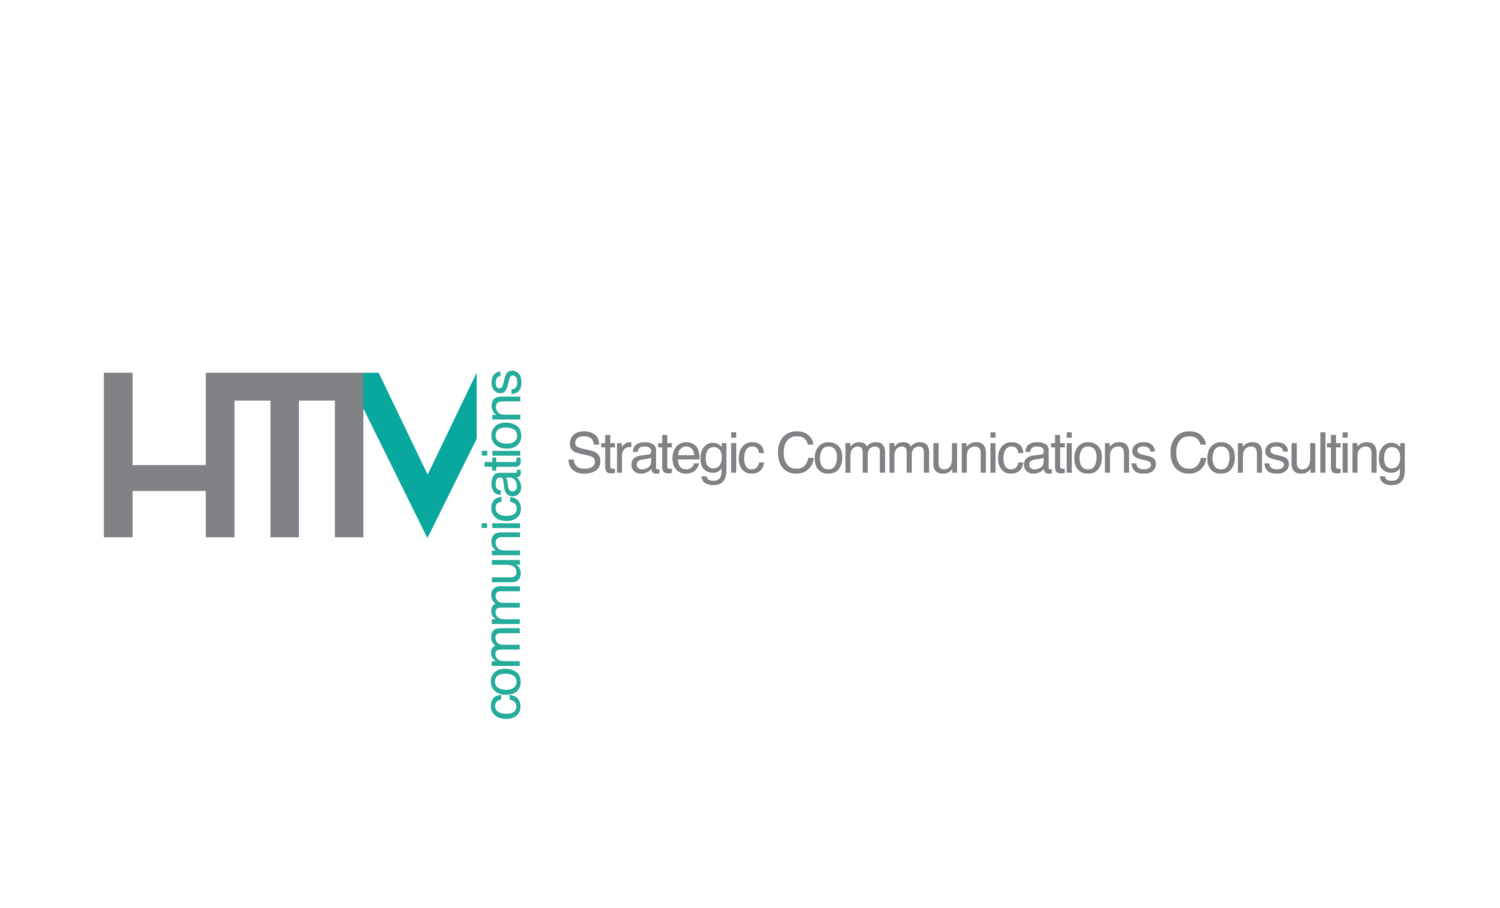 HTM Communications